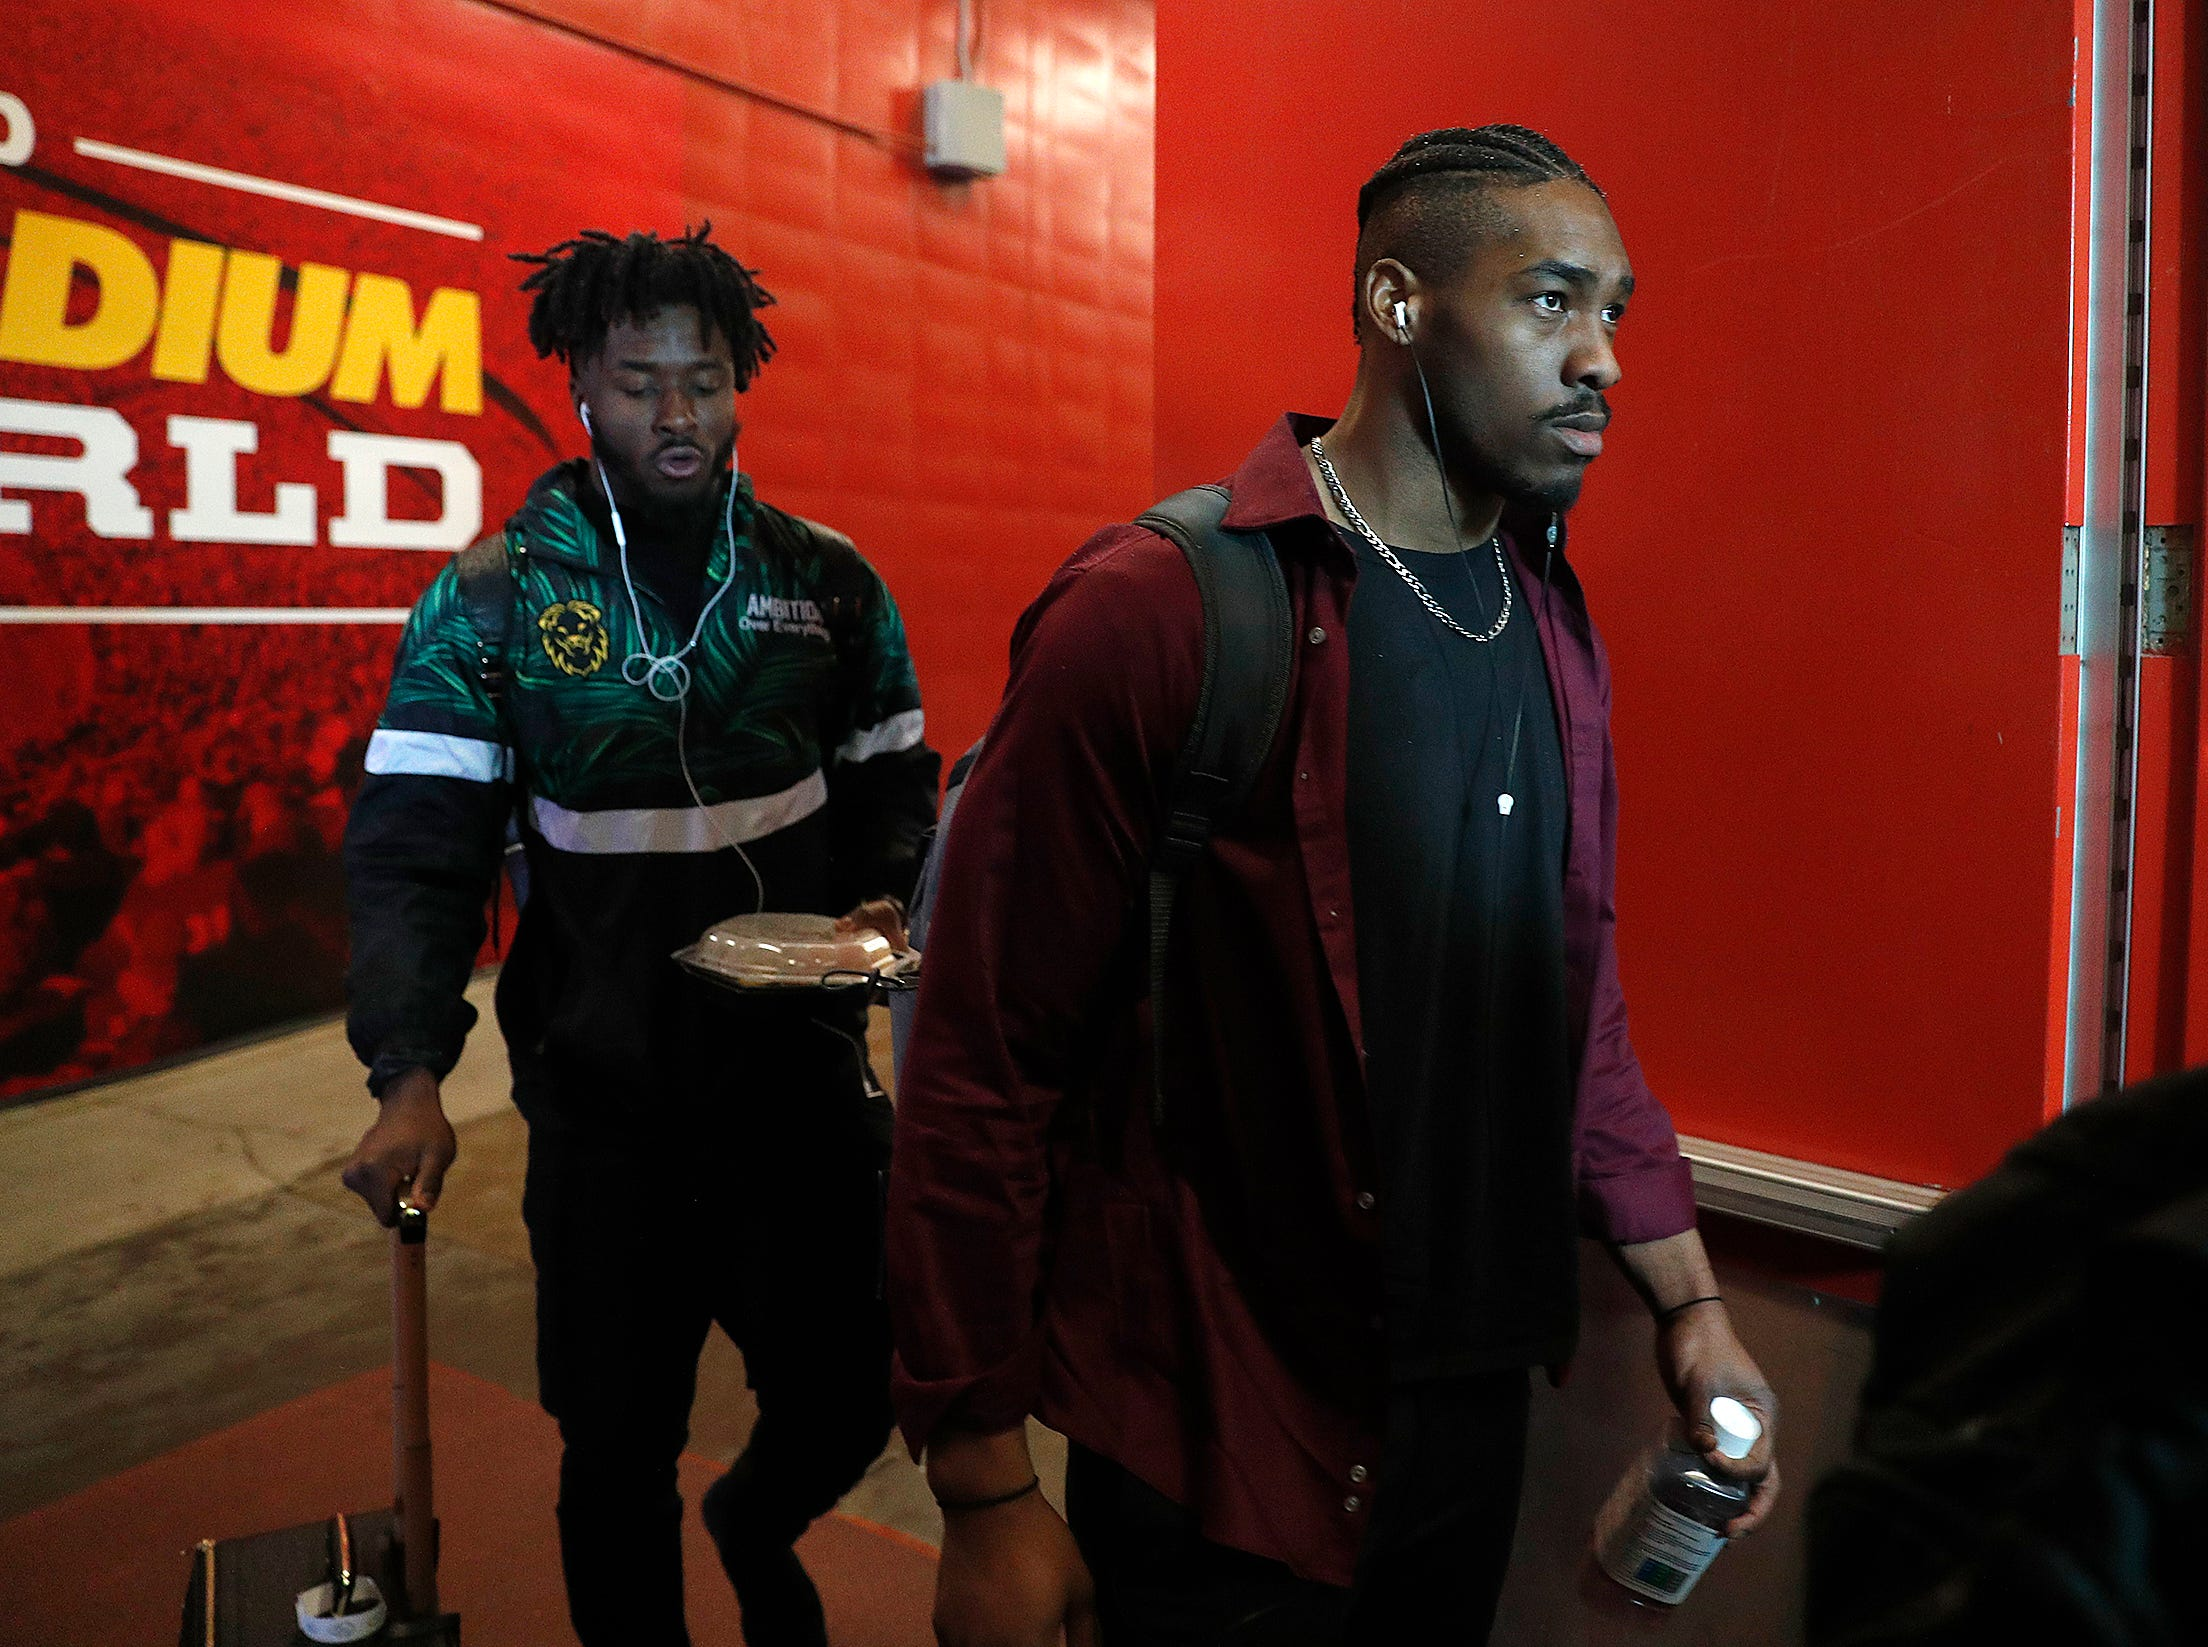 Indianapolis Colts defensive tackle Al-Quadin Muhammad (97) and the Indianapolis Colts arrive for their game against the Kansas City Chiefs at Arrowhead Stadium in Kansas City, MO., on Saturday, Jan. 12, 2019.